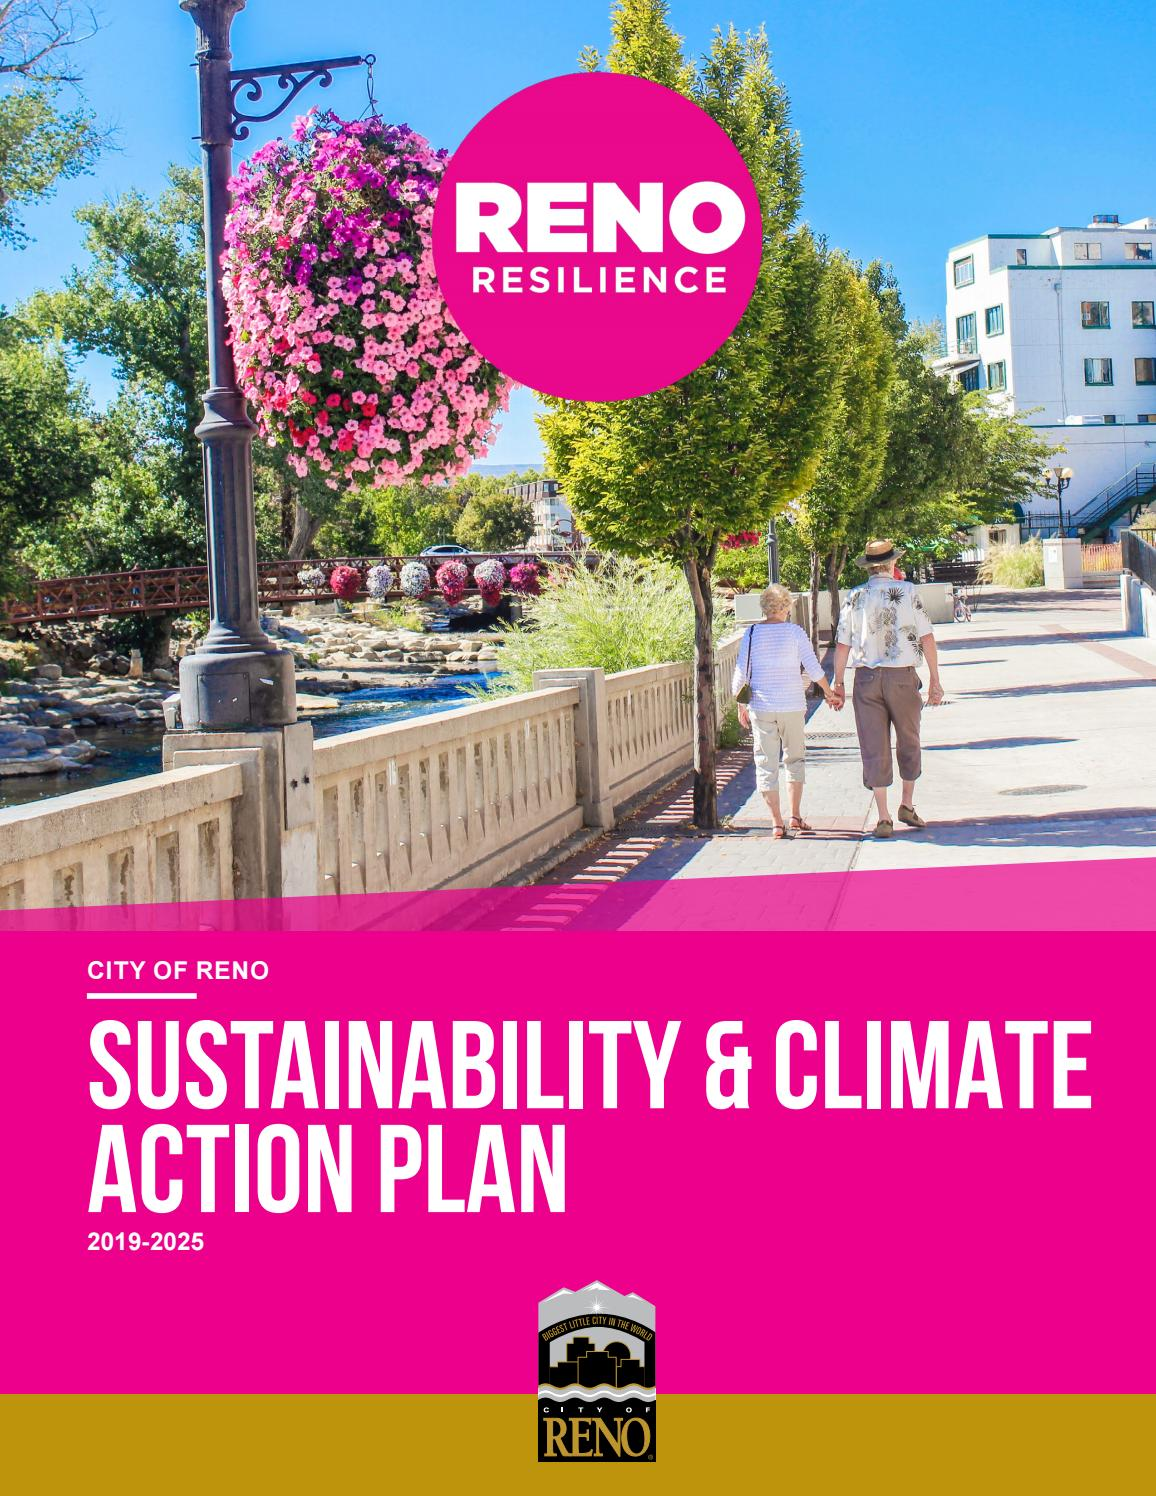 Luminaire Saint Martin D Heres 2019-2025 sustainability & climate action plancity of